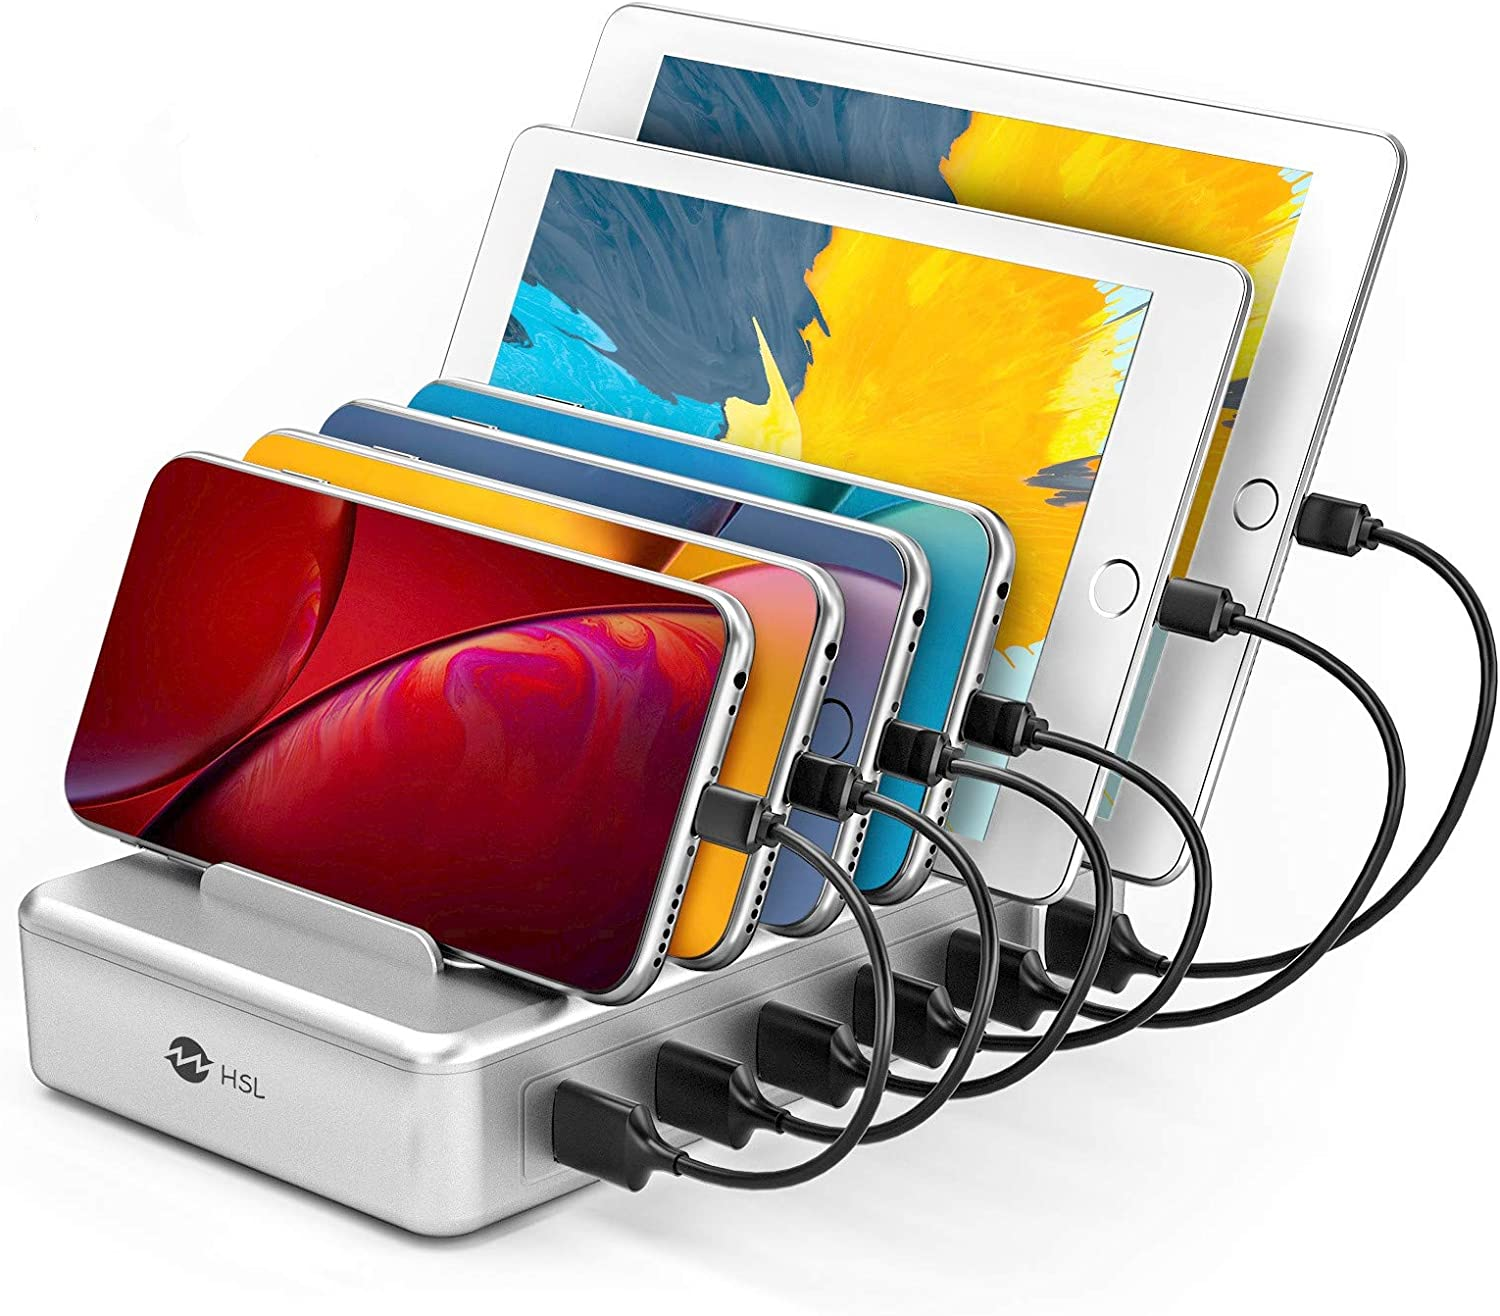 Charging Station for Multiple Devices - 6 Port Fast Charging Station for iPhone iPad Android and Tablet - Multi Charging Station - Phone Charging Station with 6 Mixed Cables Included(UL Certified)